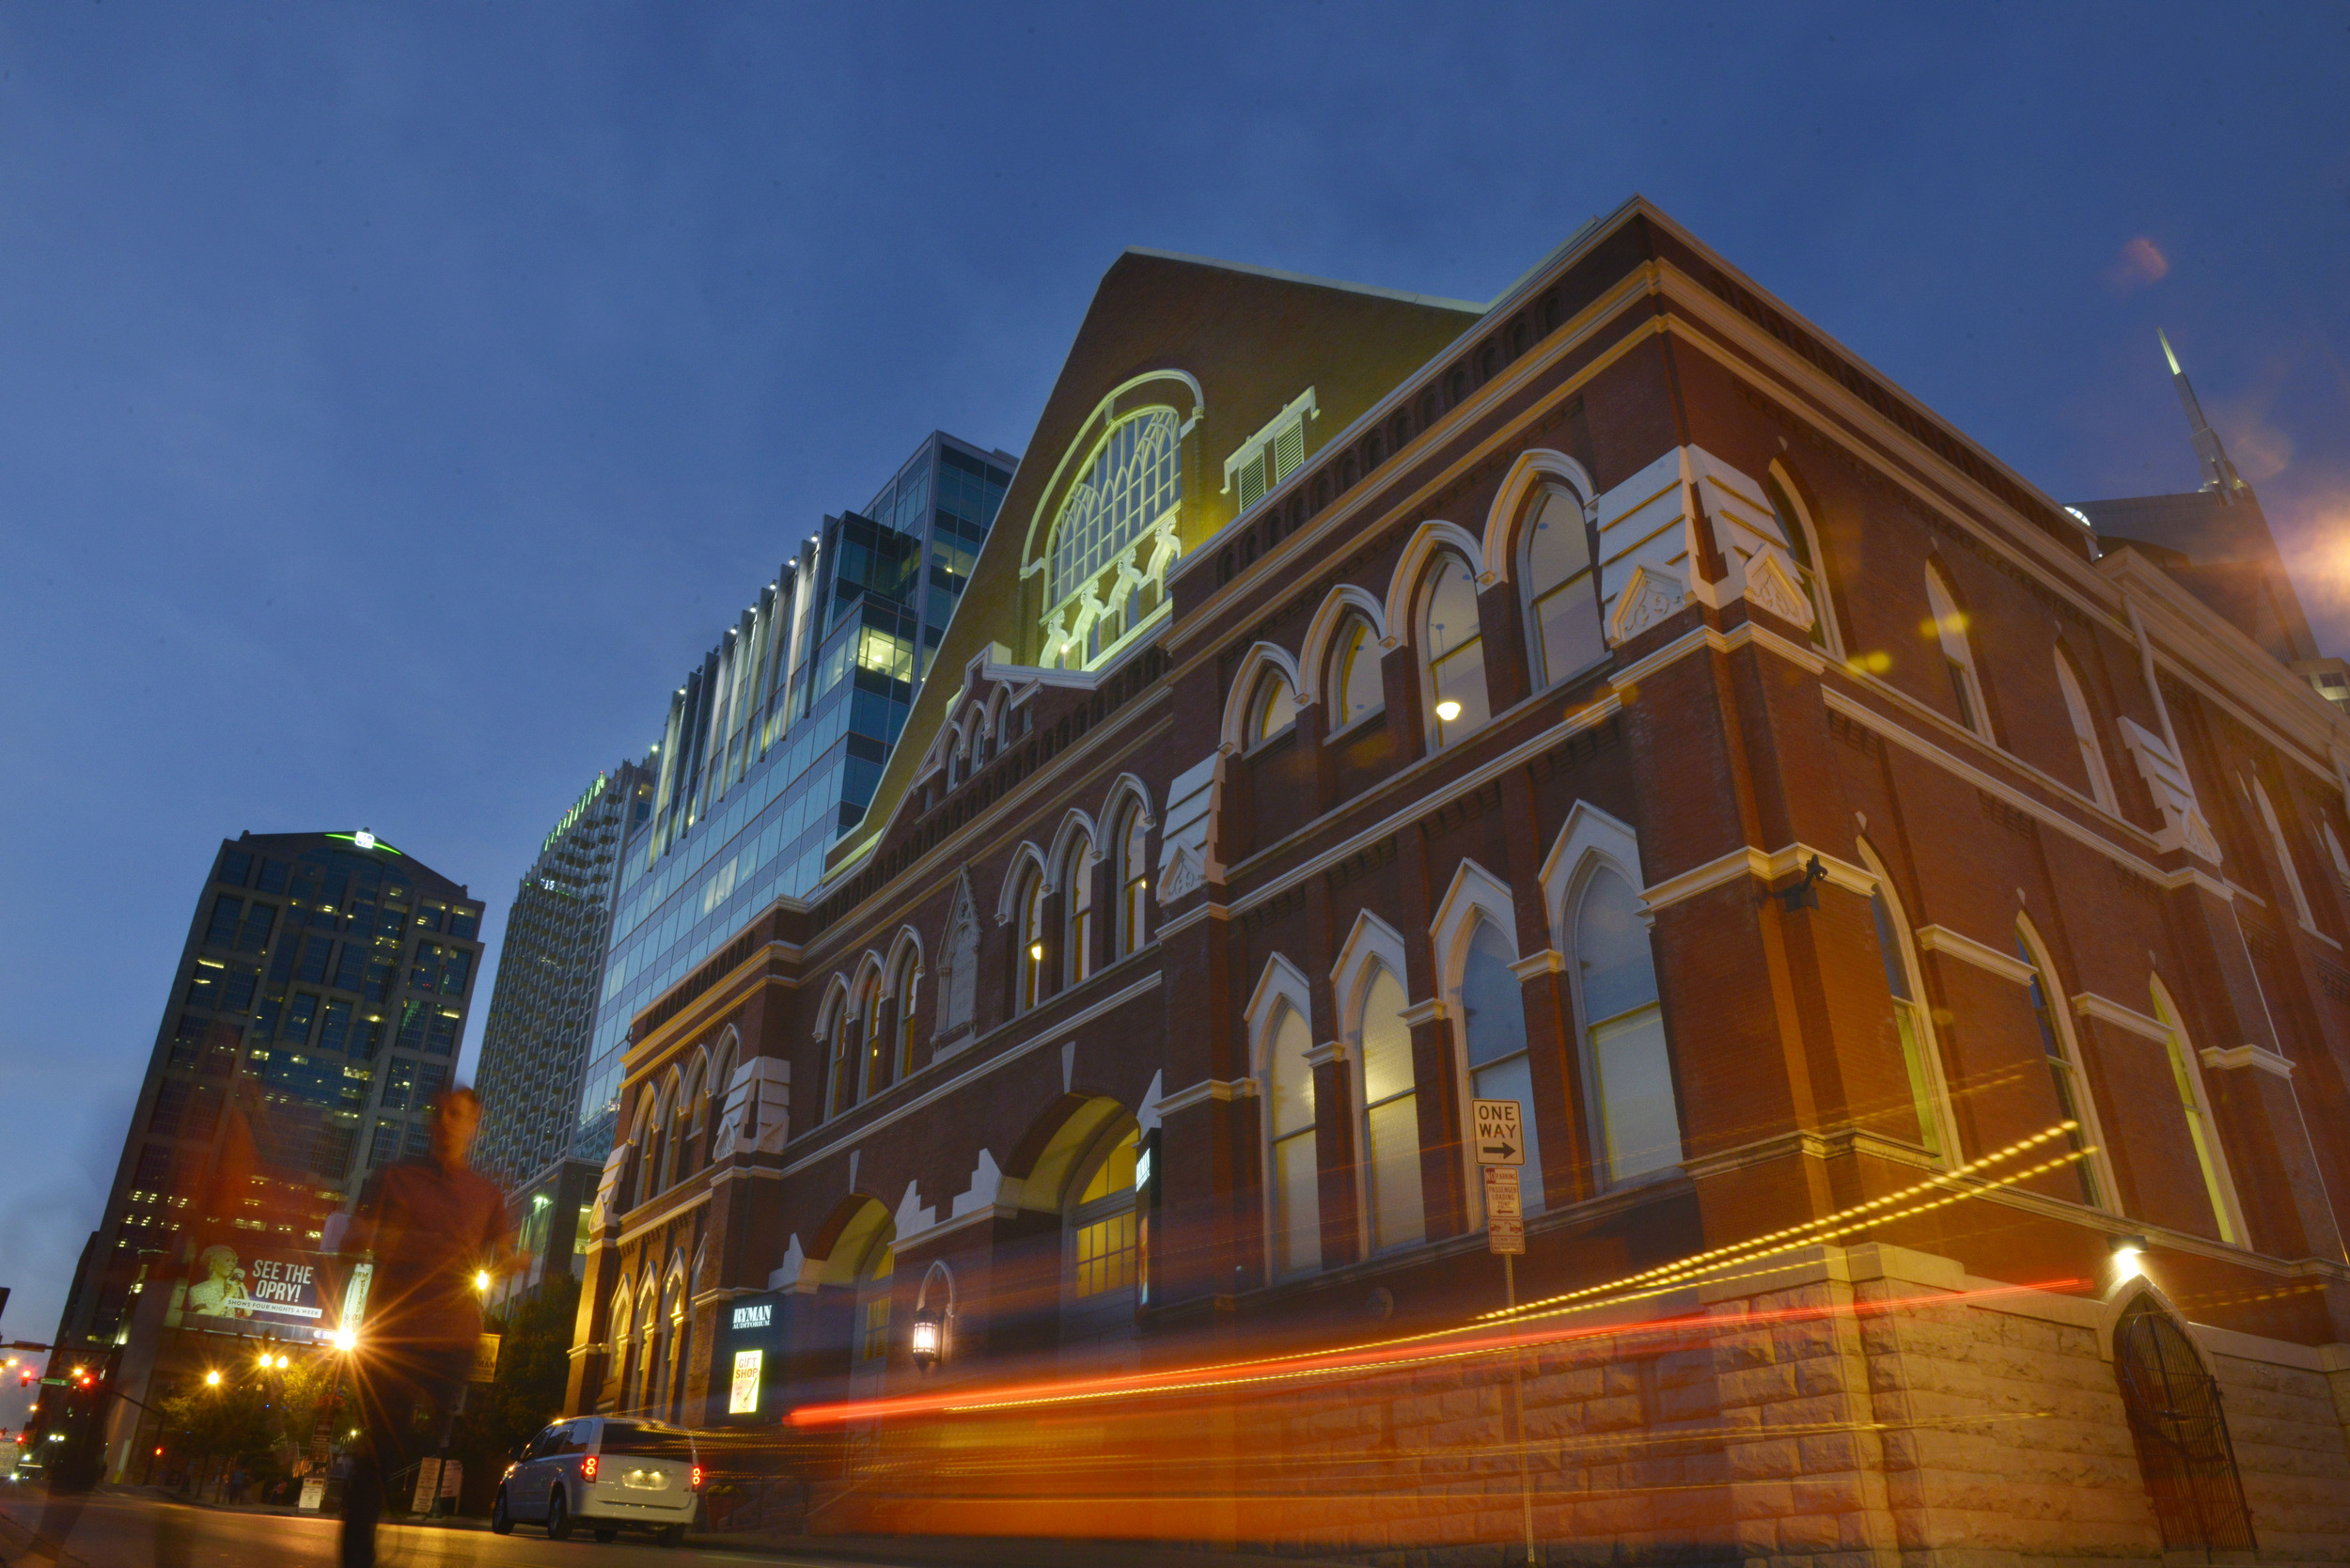 The Ryman, the famed auditorium known as the mother church of country music,  in Nashville, Tenn.